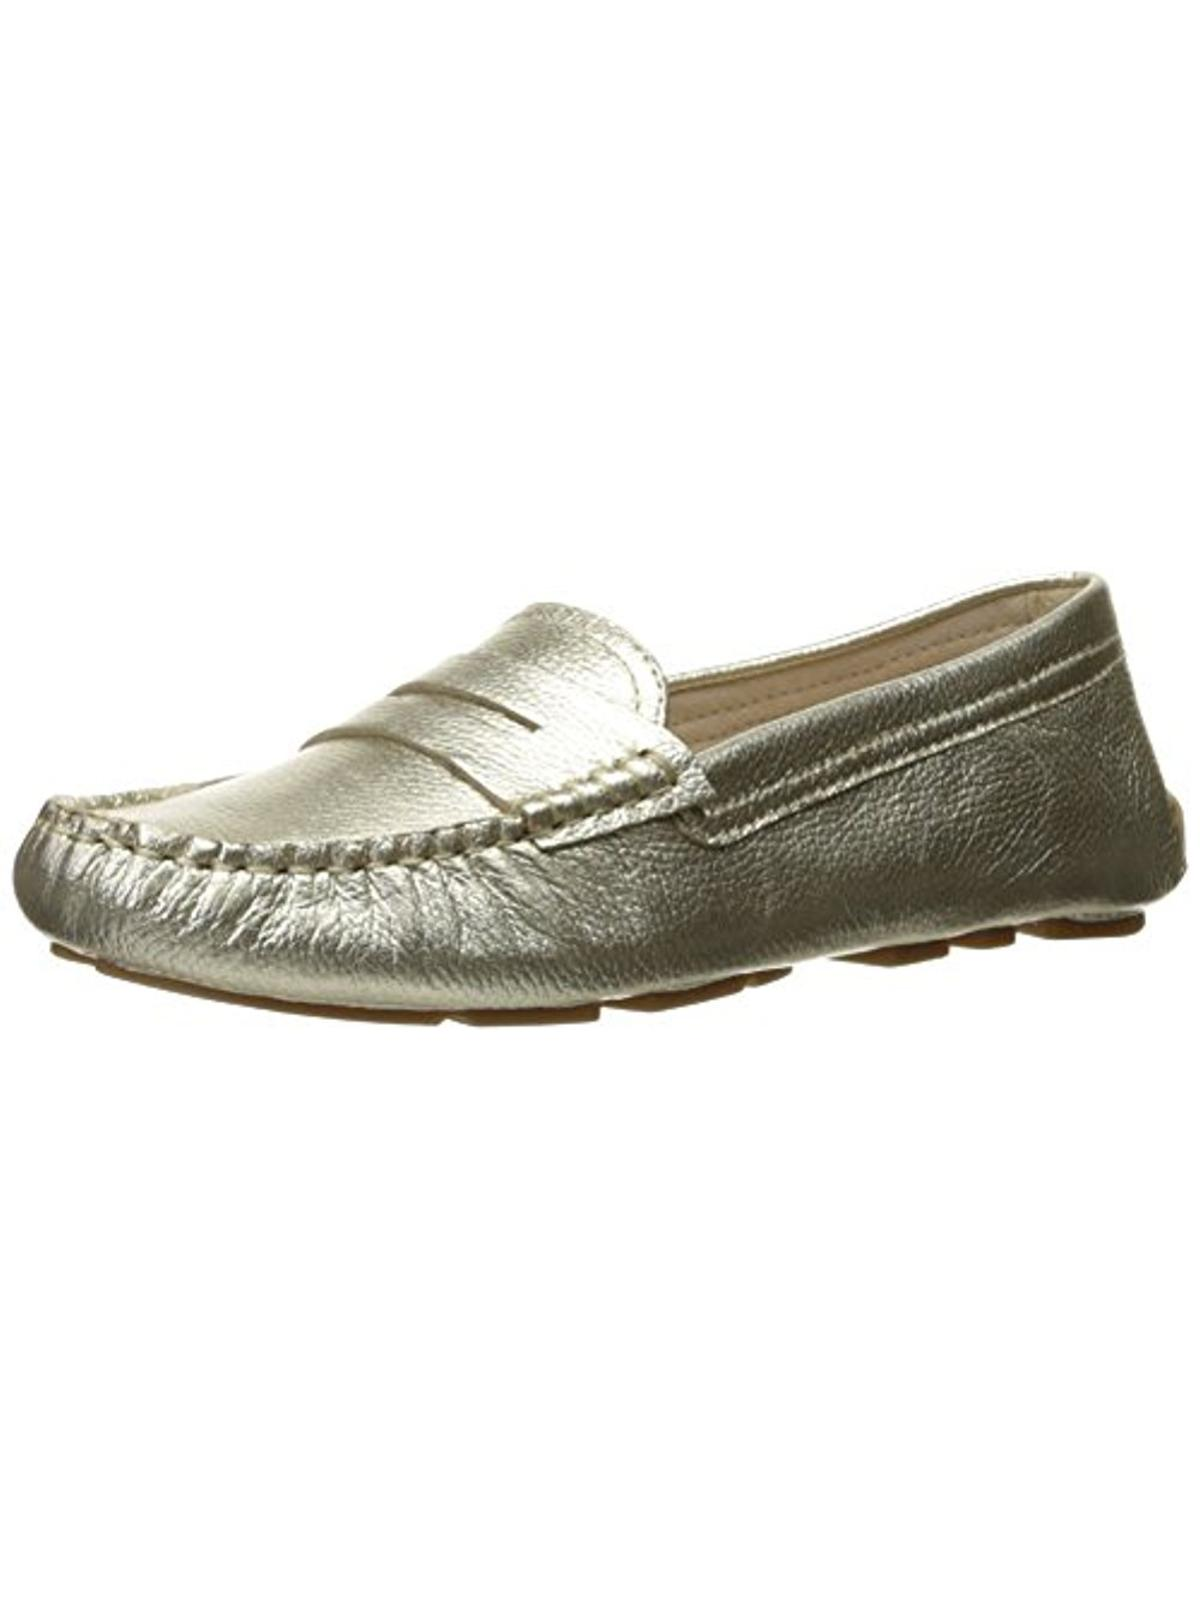 Sam Edelman Womens Filly Leather Penny Loafers Gold 10 Medium (B,M)